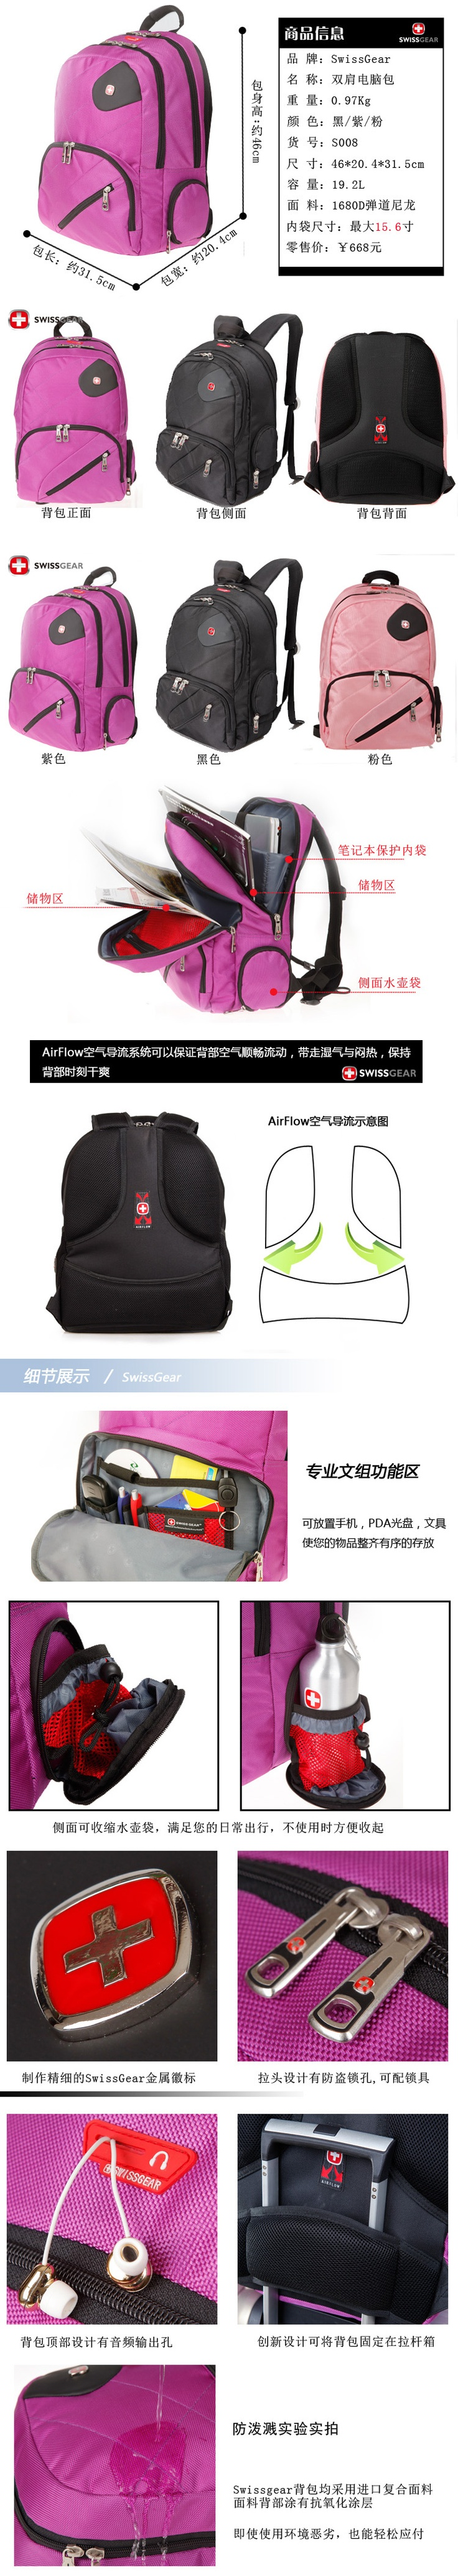 Small and delicate! Free shipping 13-inch, 14-inch Swiss Army knife shoulder bag Ms. laptop bag backpack S008-Taobao